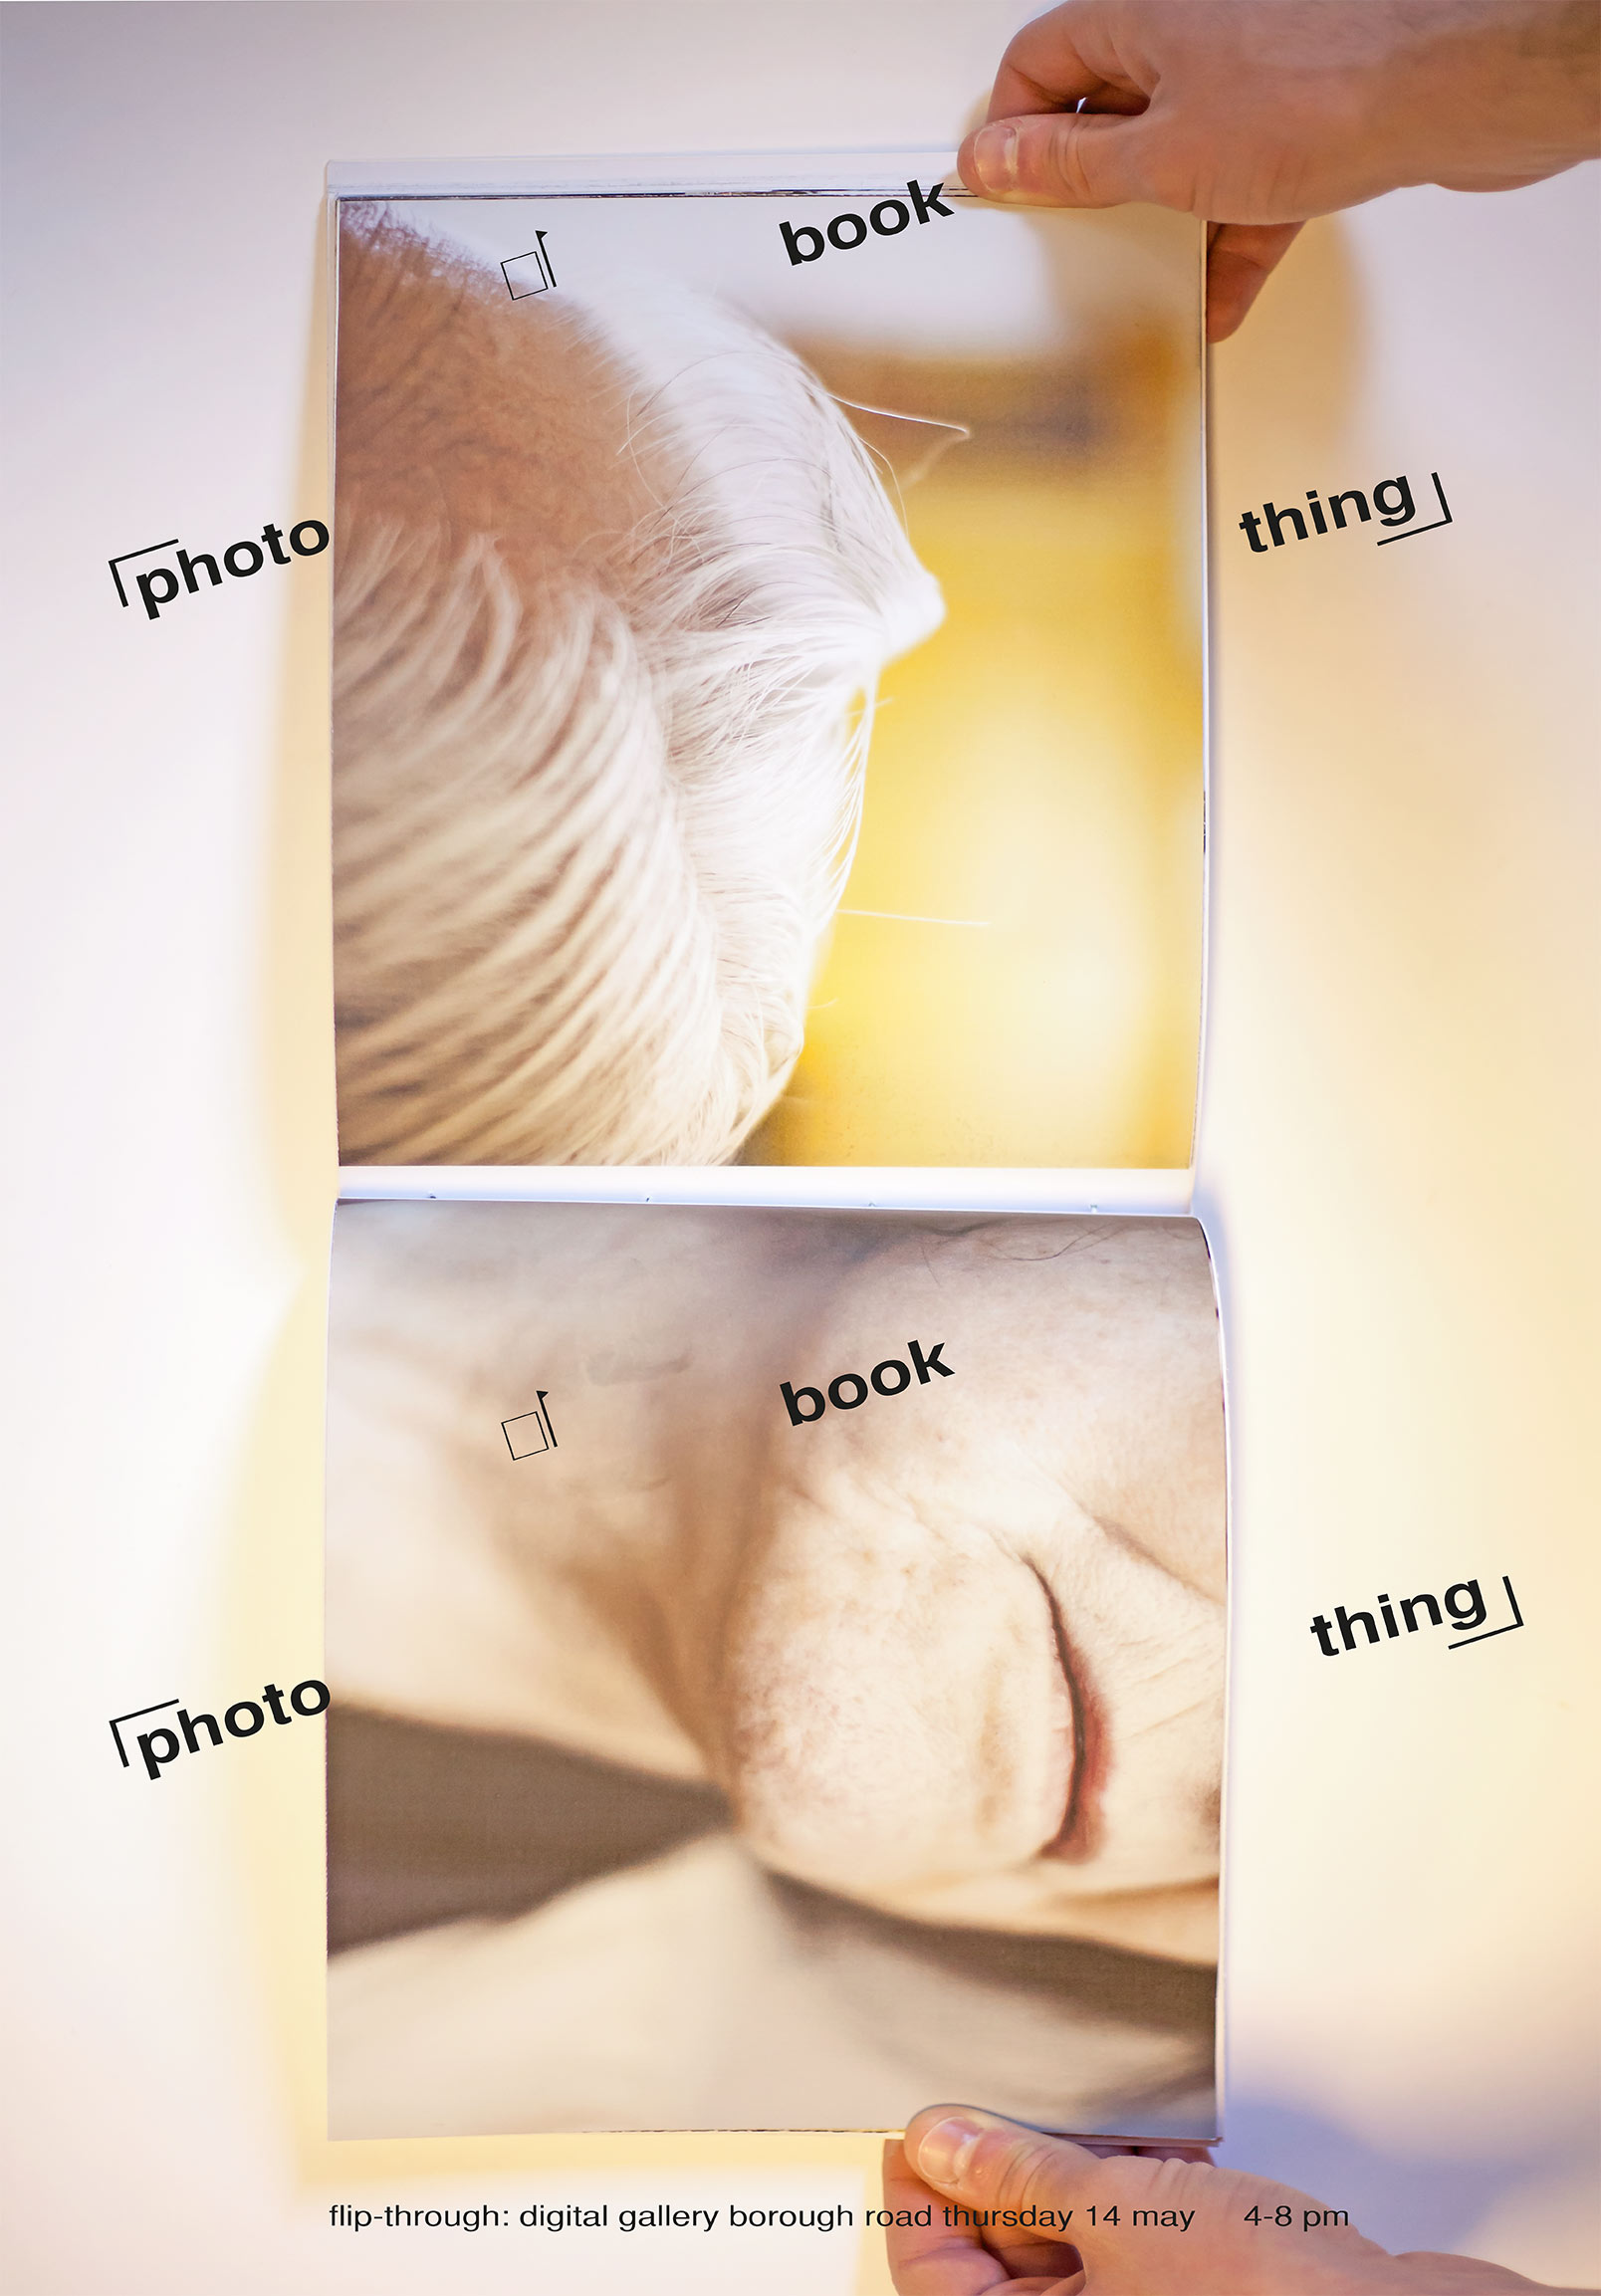 PHOTO-BOOK-THING-3